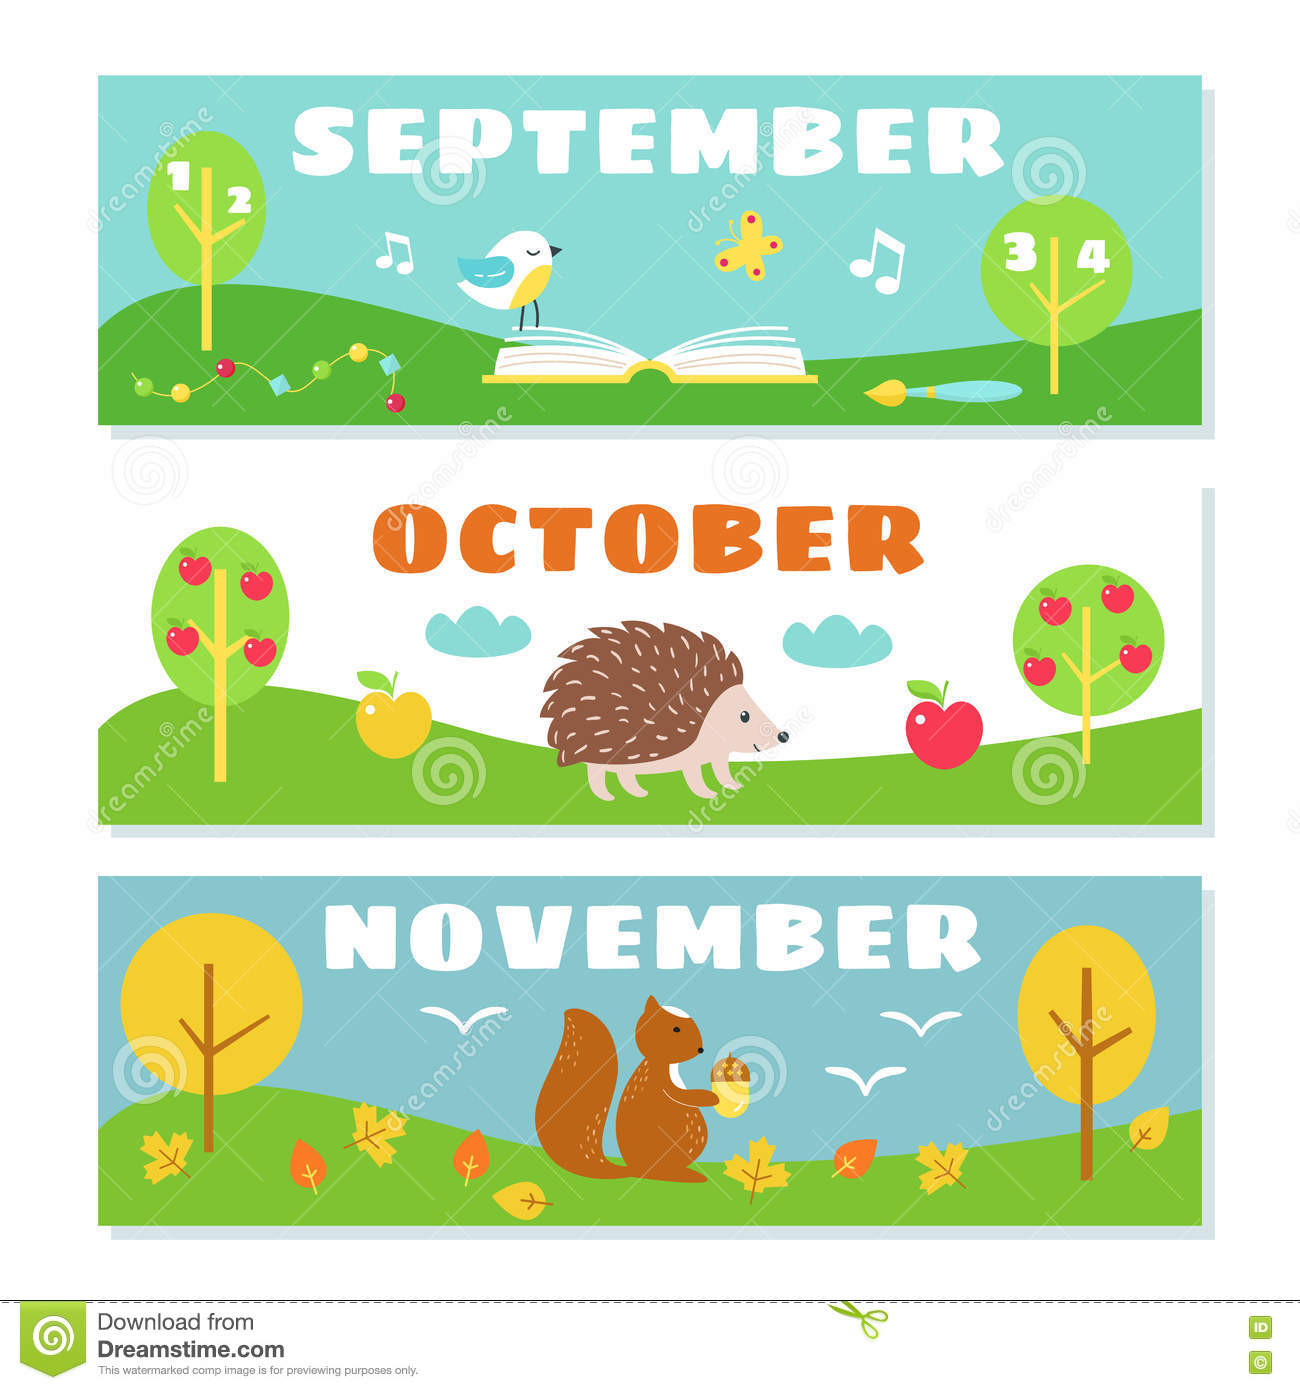 Autumn Months Calendar Flashcards Set Nature Symbols Illustrations Vector Design as well  on t2 s 069 earth sun and moon worksheets